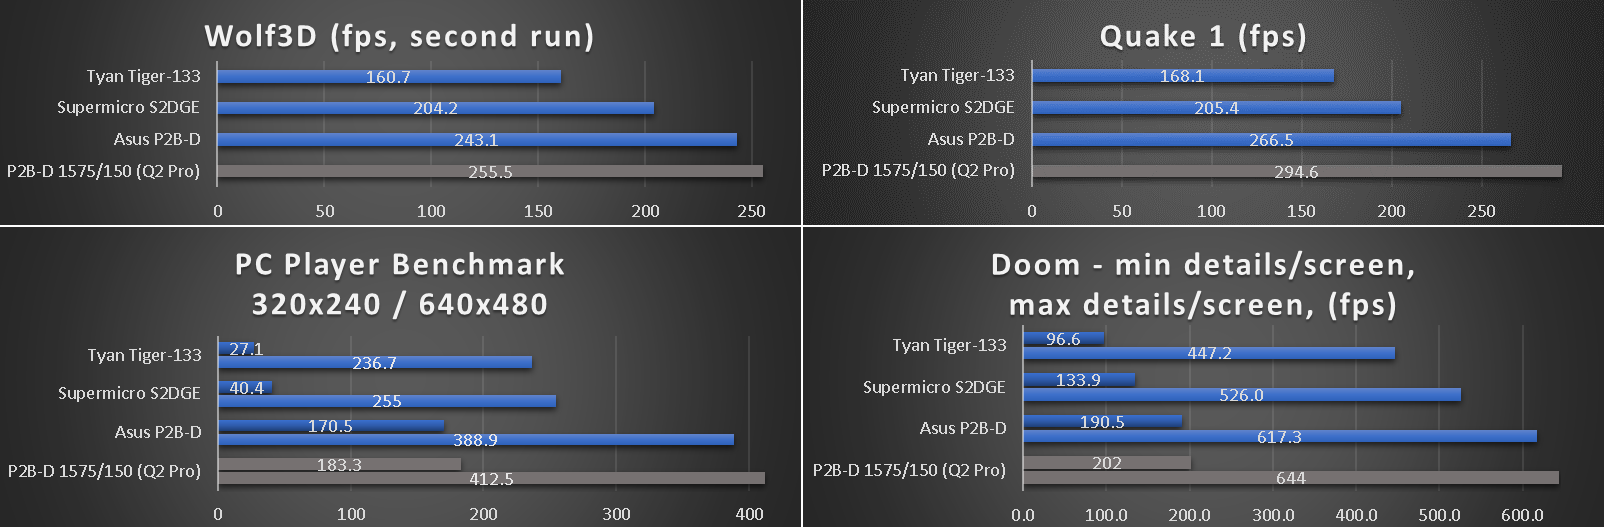 benchmarks_dos.png